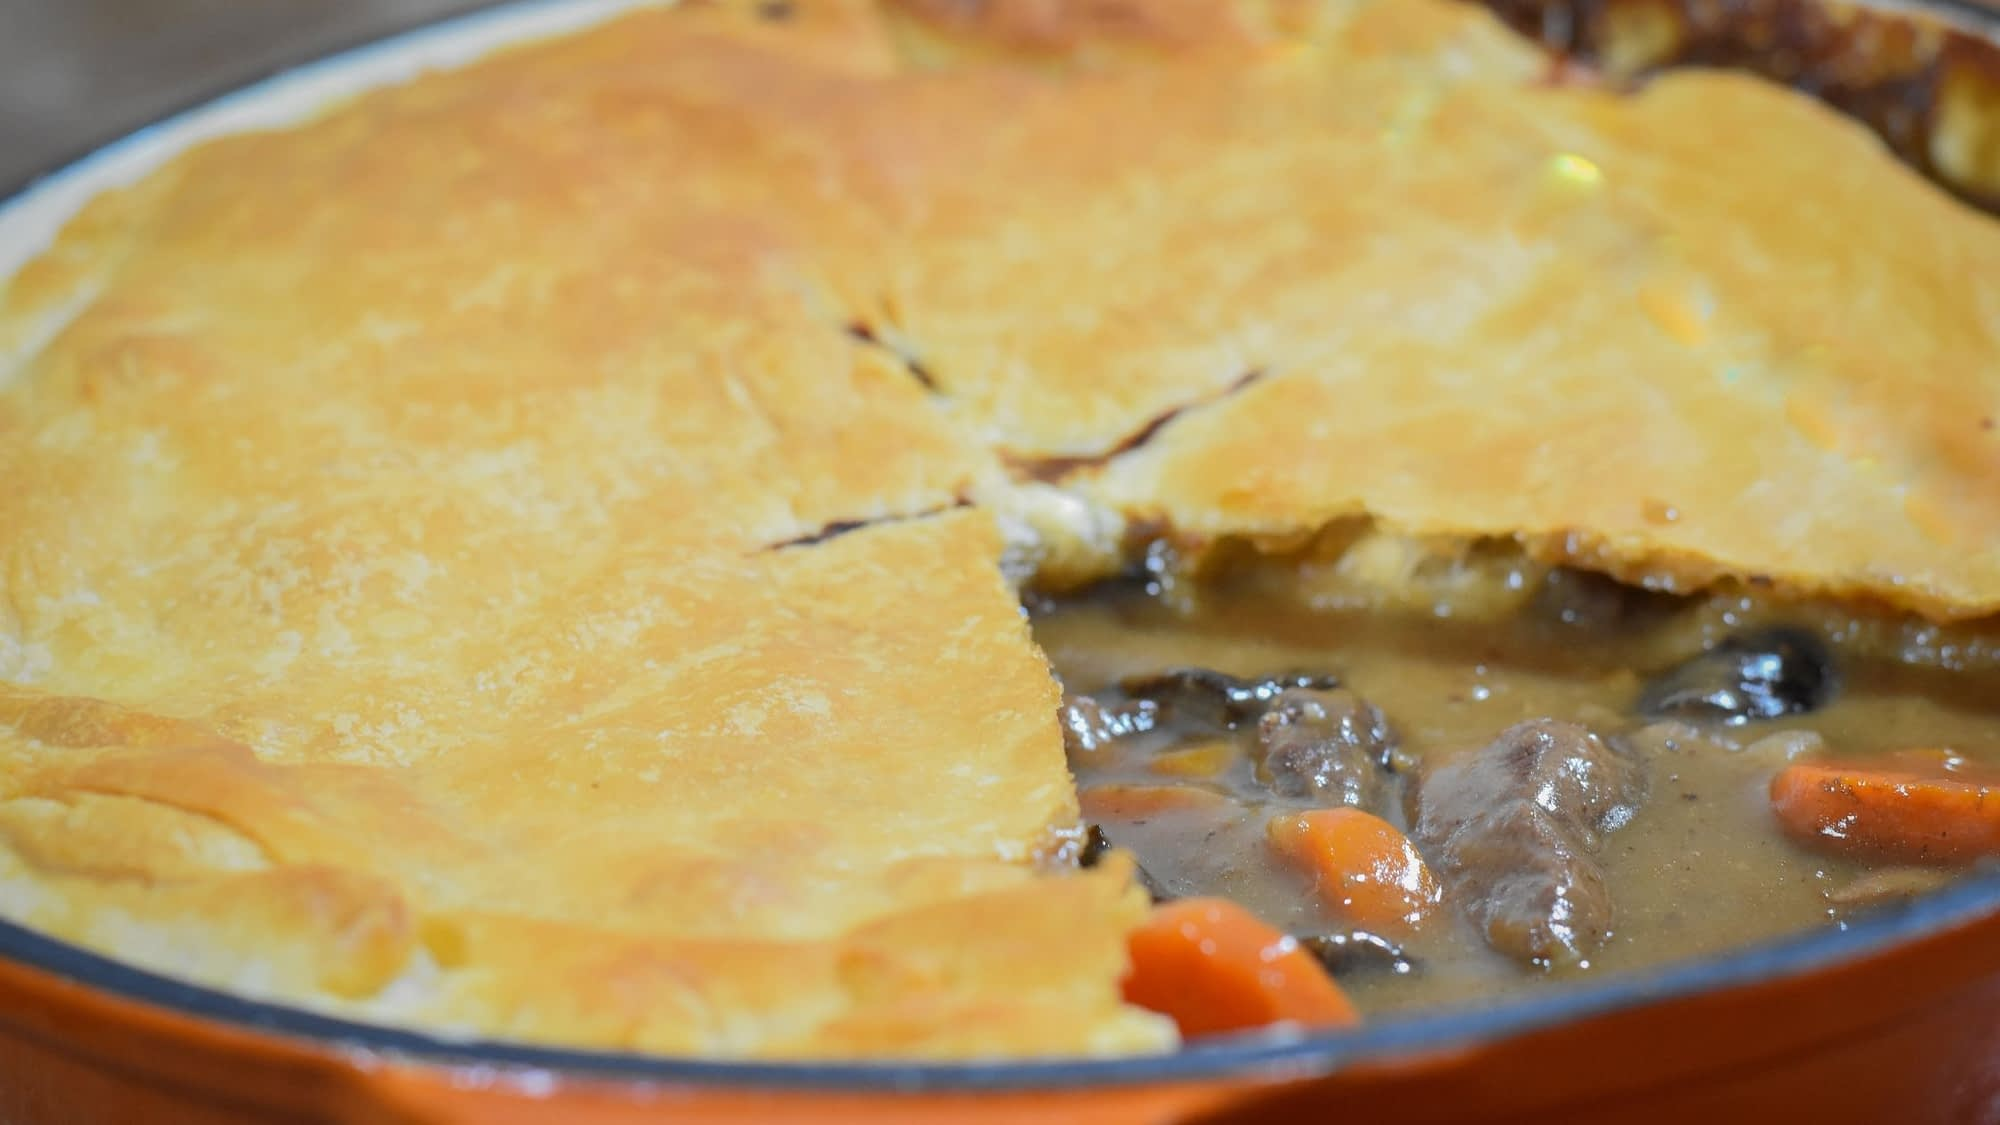 Venison steak and kidney pie